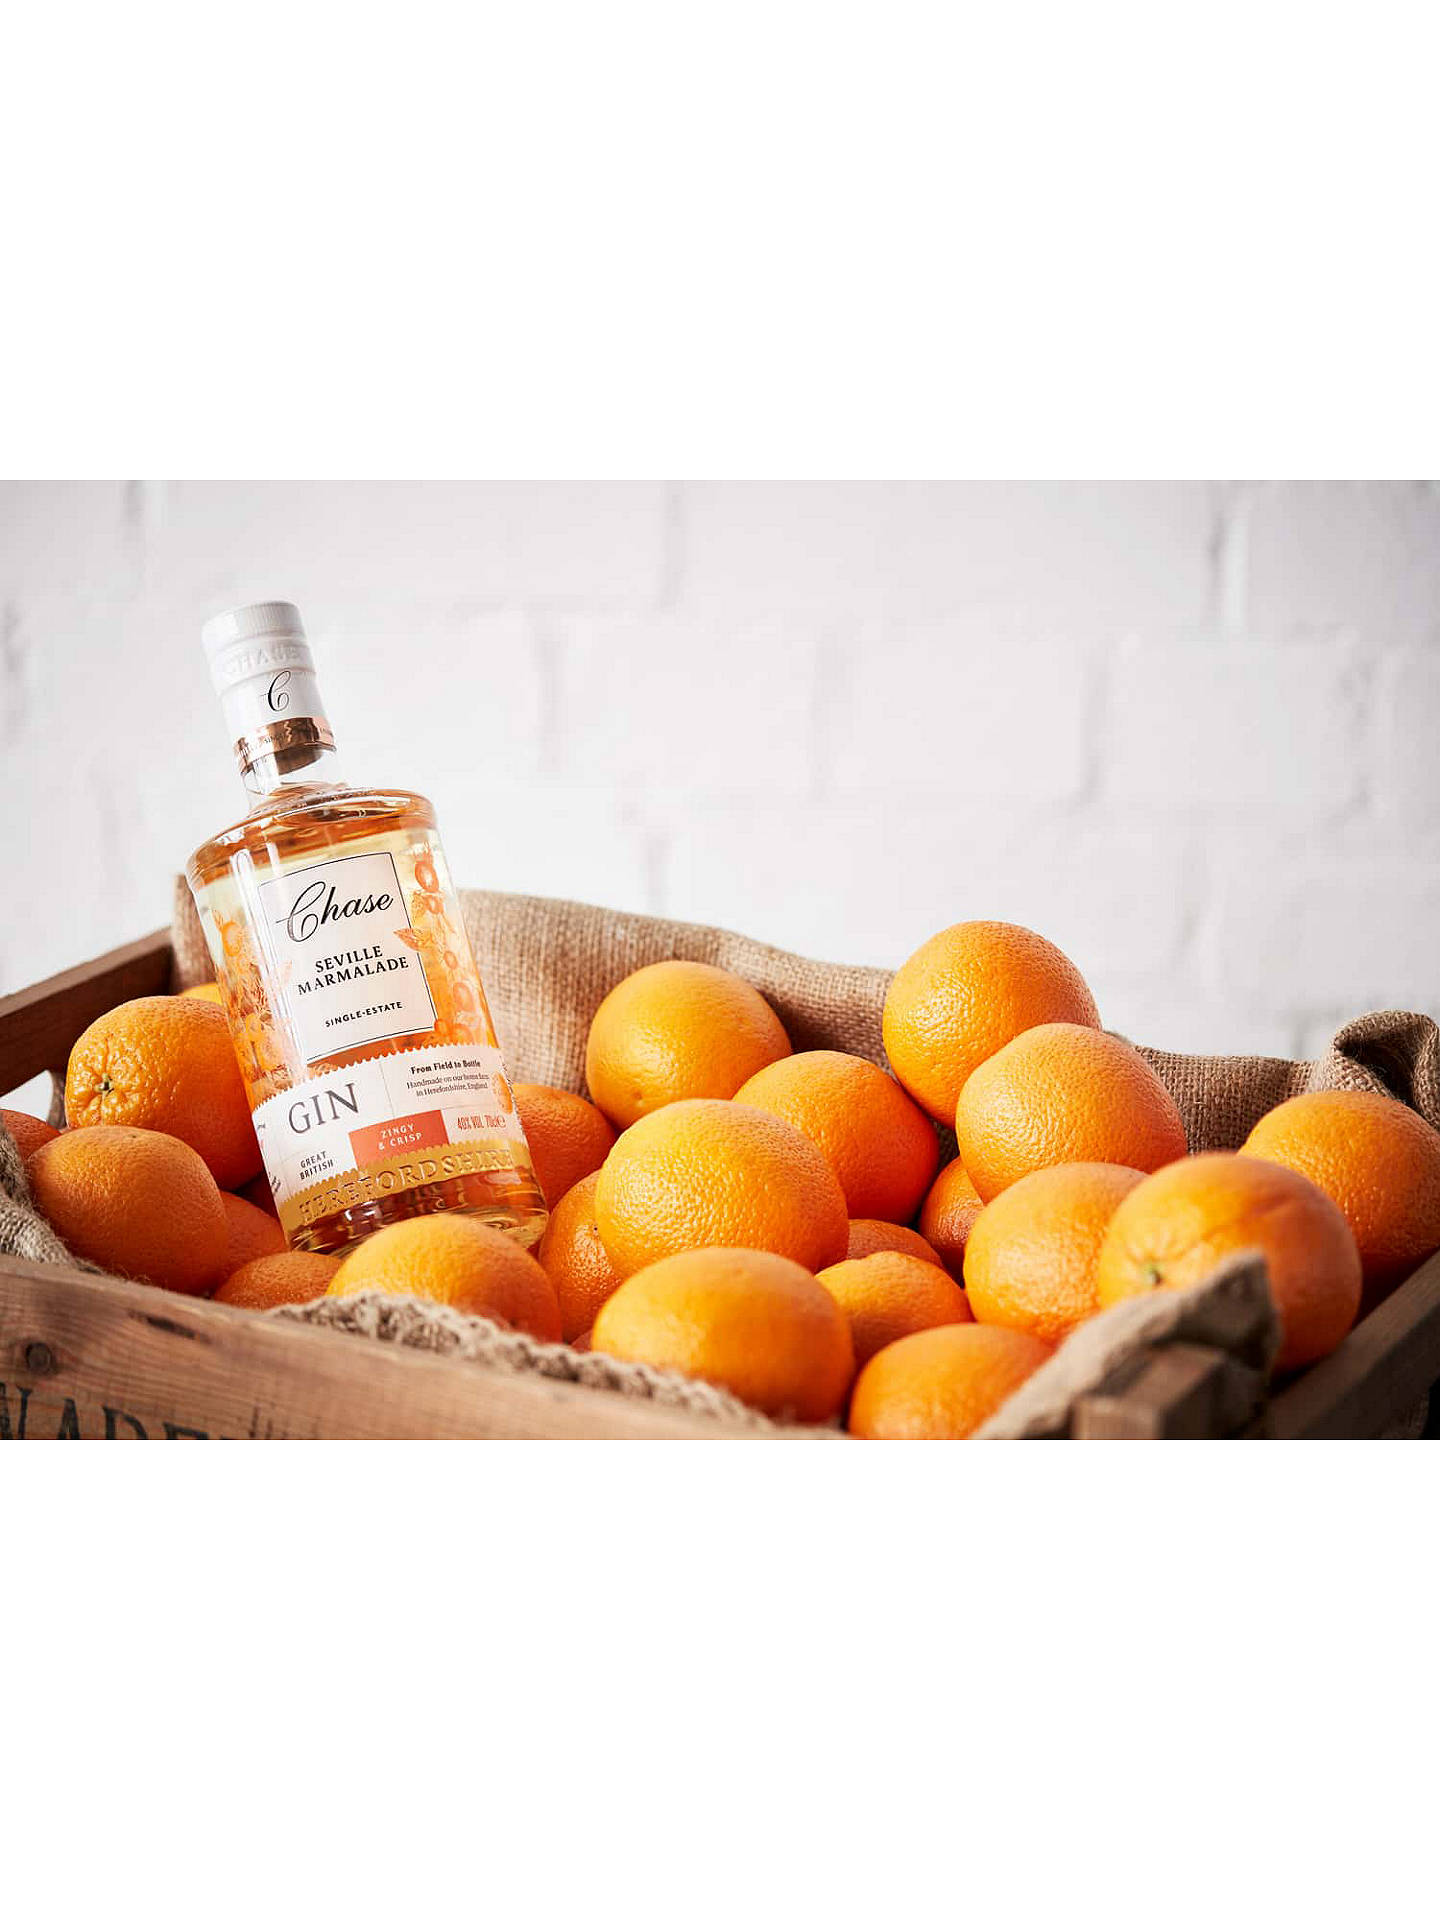 Buy Chase Williams Seville Orange Gin, 70cl Online at johnlewis.com